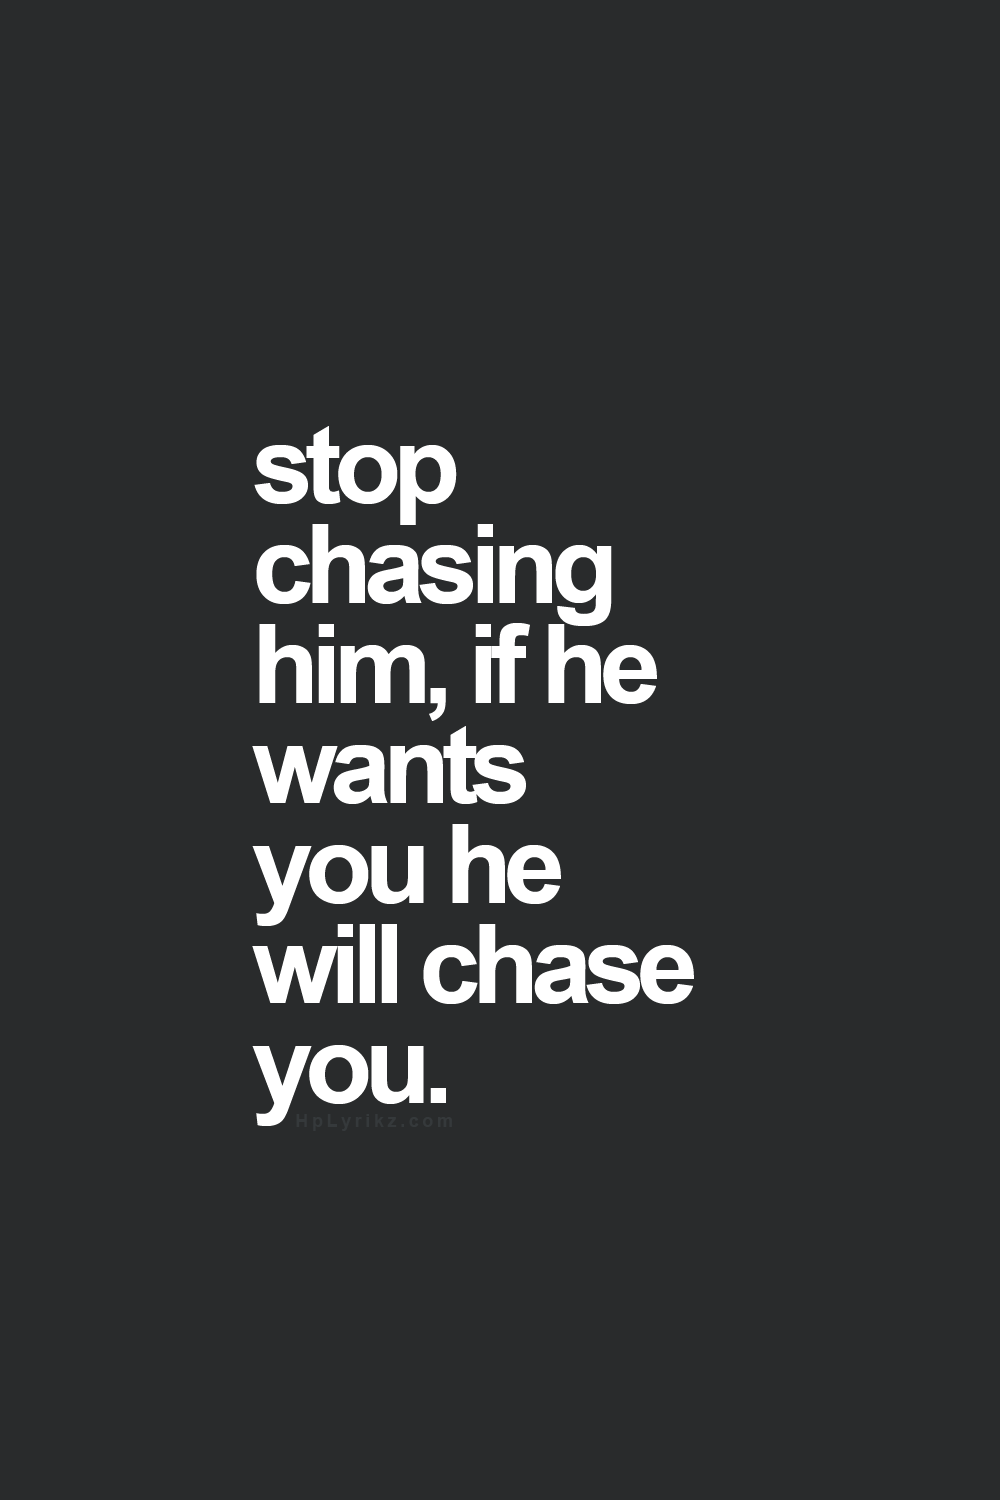 Stop chasing him and he will come back